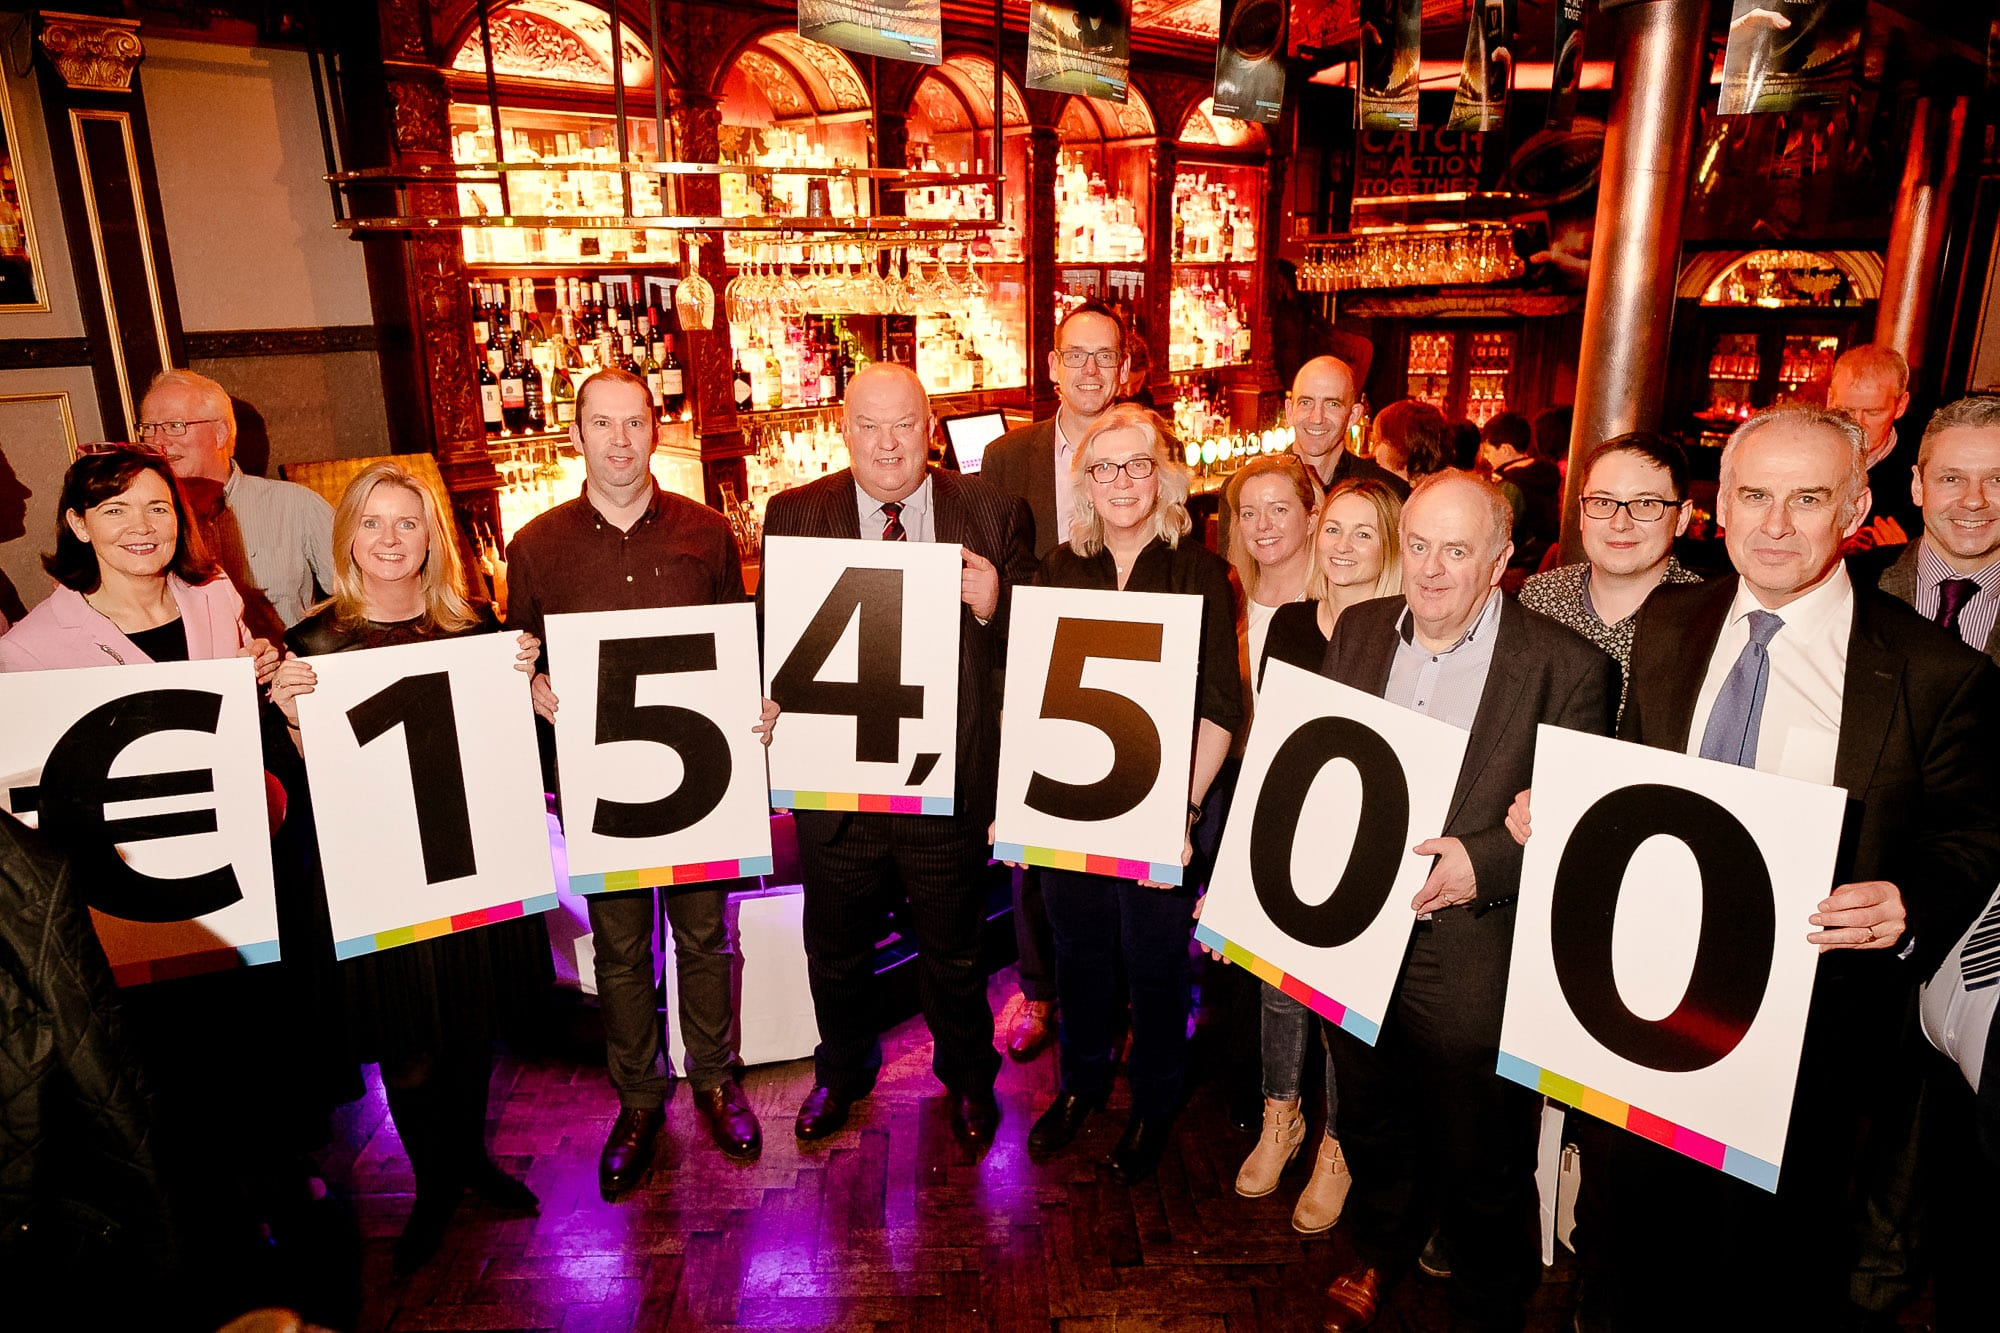 Businesses who raised 154,500 for COPE Galway honoured at event